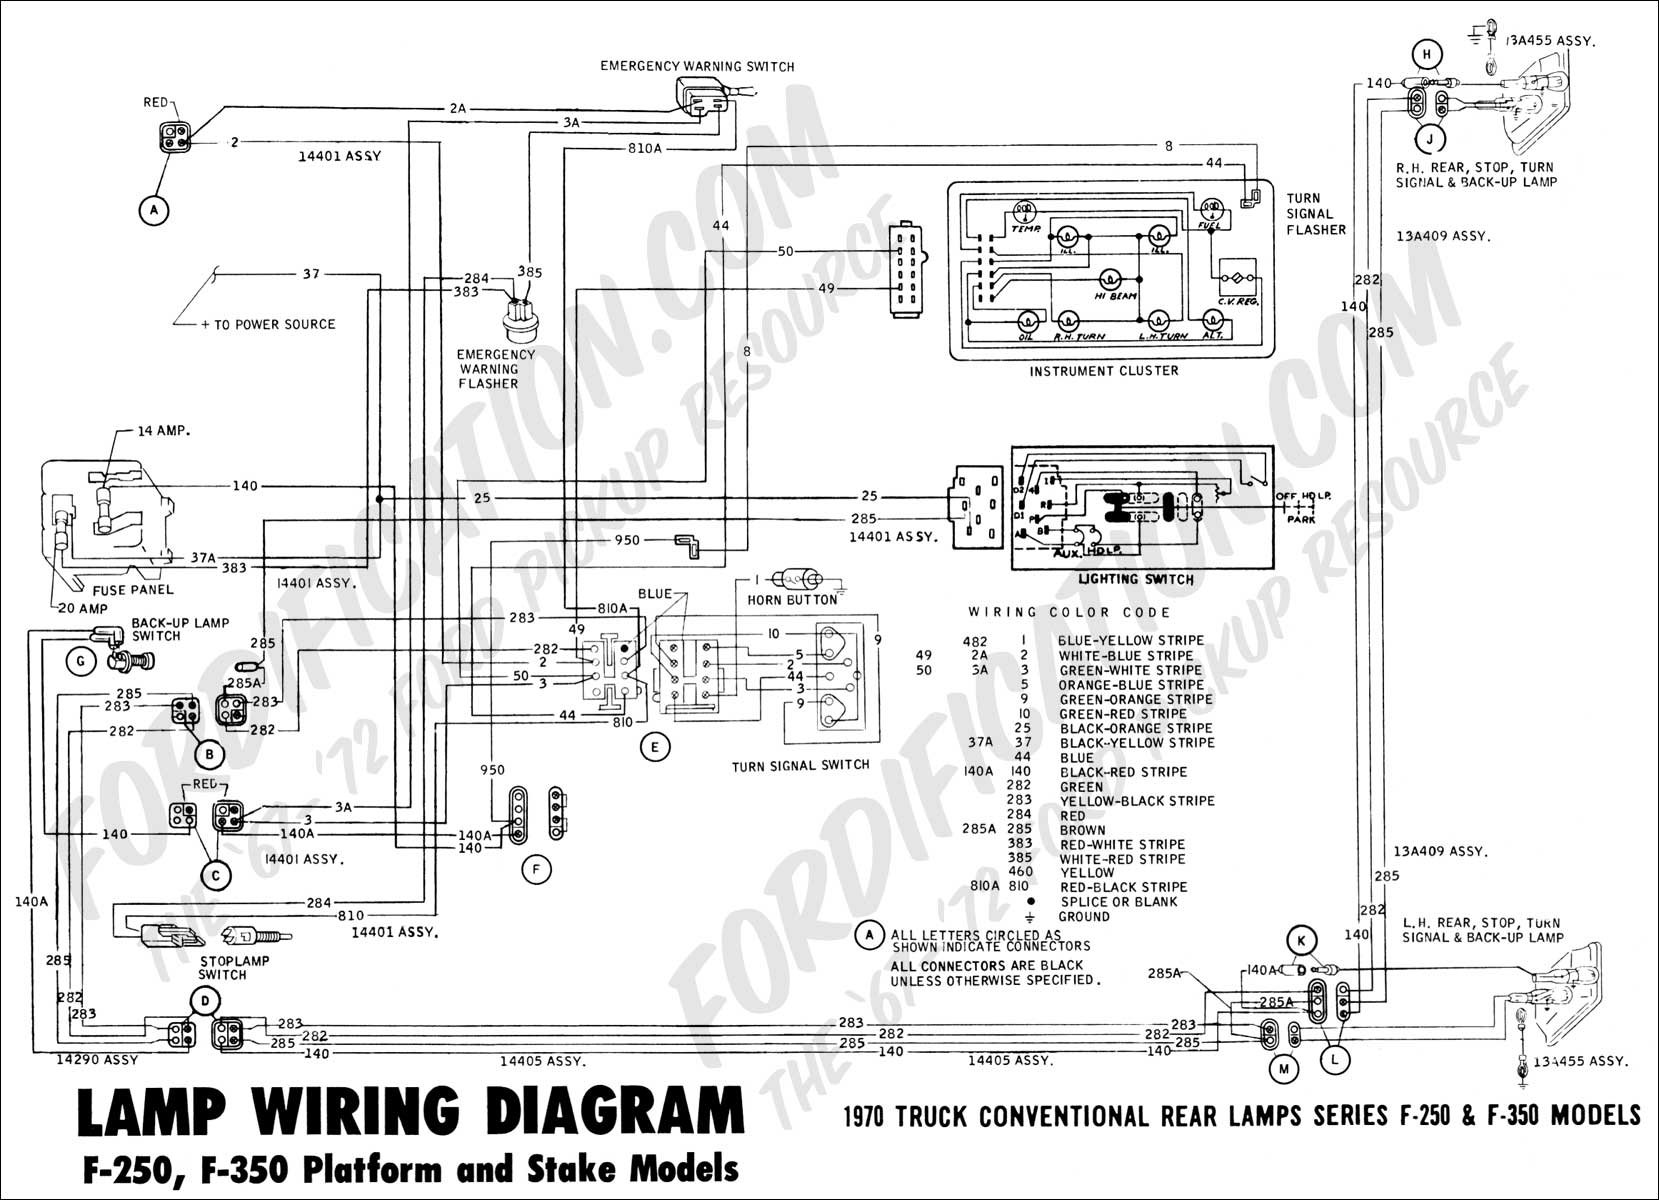 2005 F150 Headlight Wiring Diagram 90 1 Archive Of Automotive 2002 Jeep Wrangler Dash Light Ford F 150 Instrument Panel Schematic Blog About Rh Clares Driving Co Uk